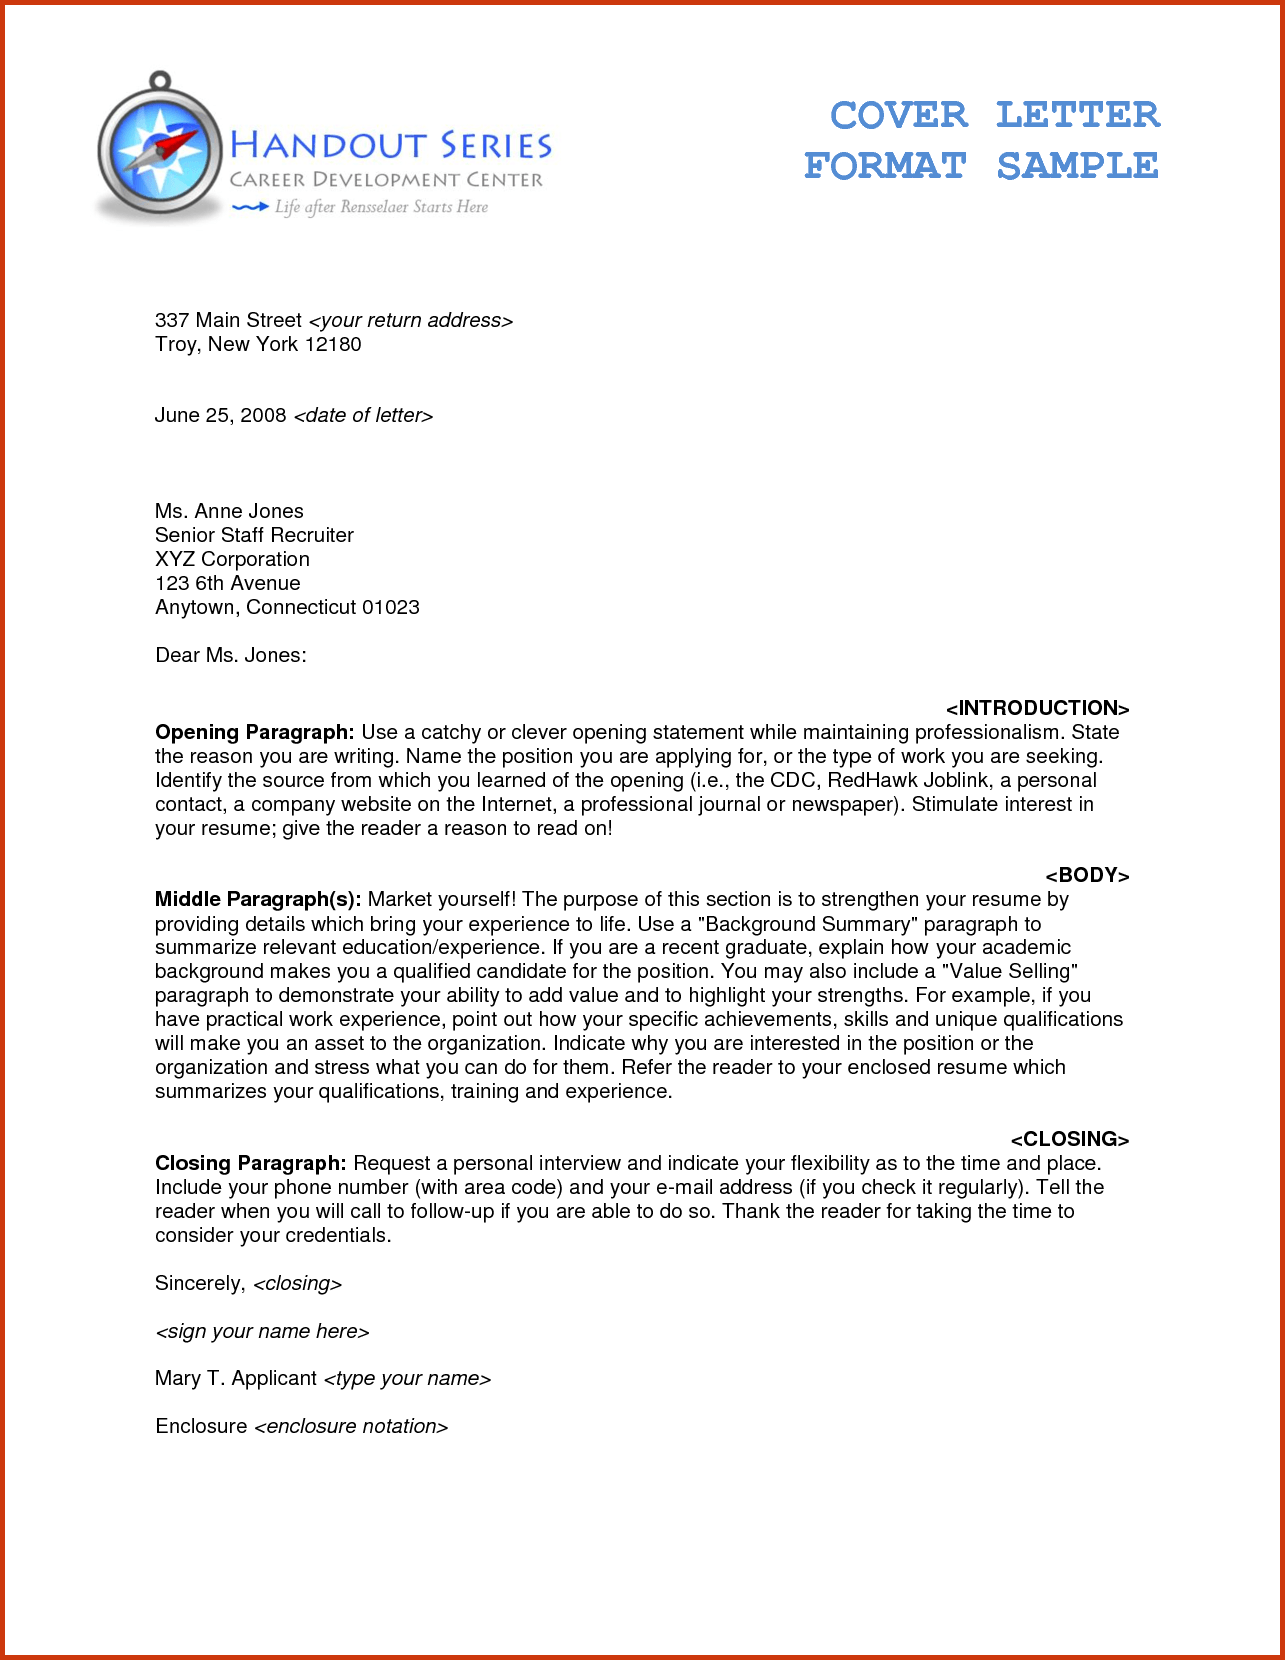 Cover letter very good application for graduate assistant format cover letter very good application for graduate assistant format exampleformal business with enclosures examples proper resume spiritdancerdesigns Image collections